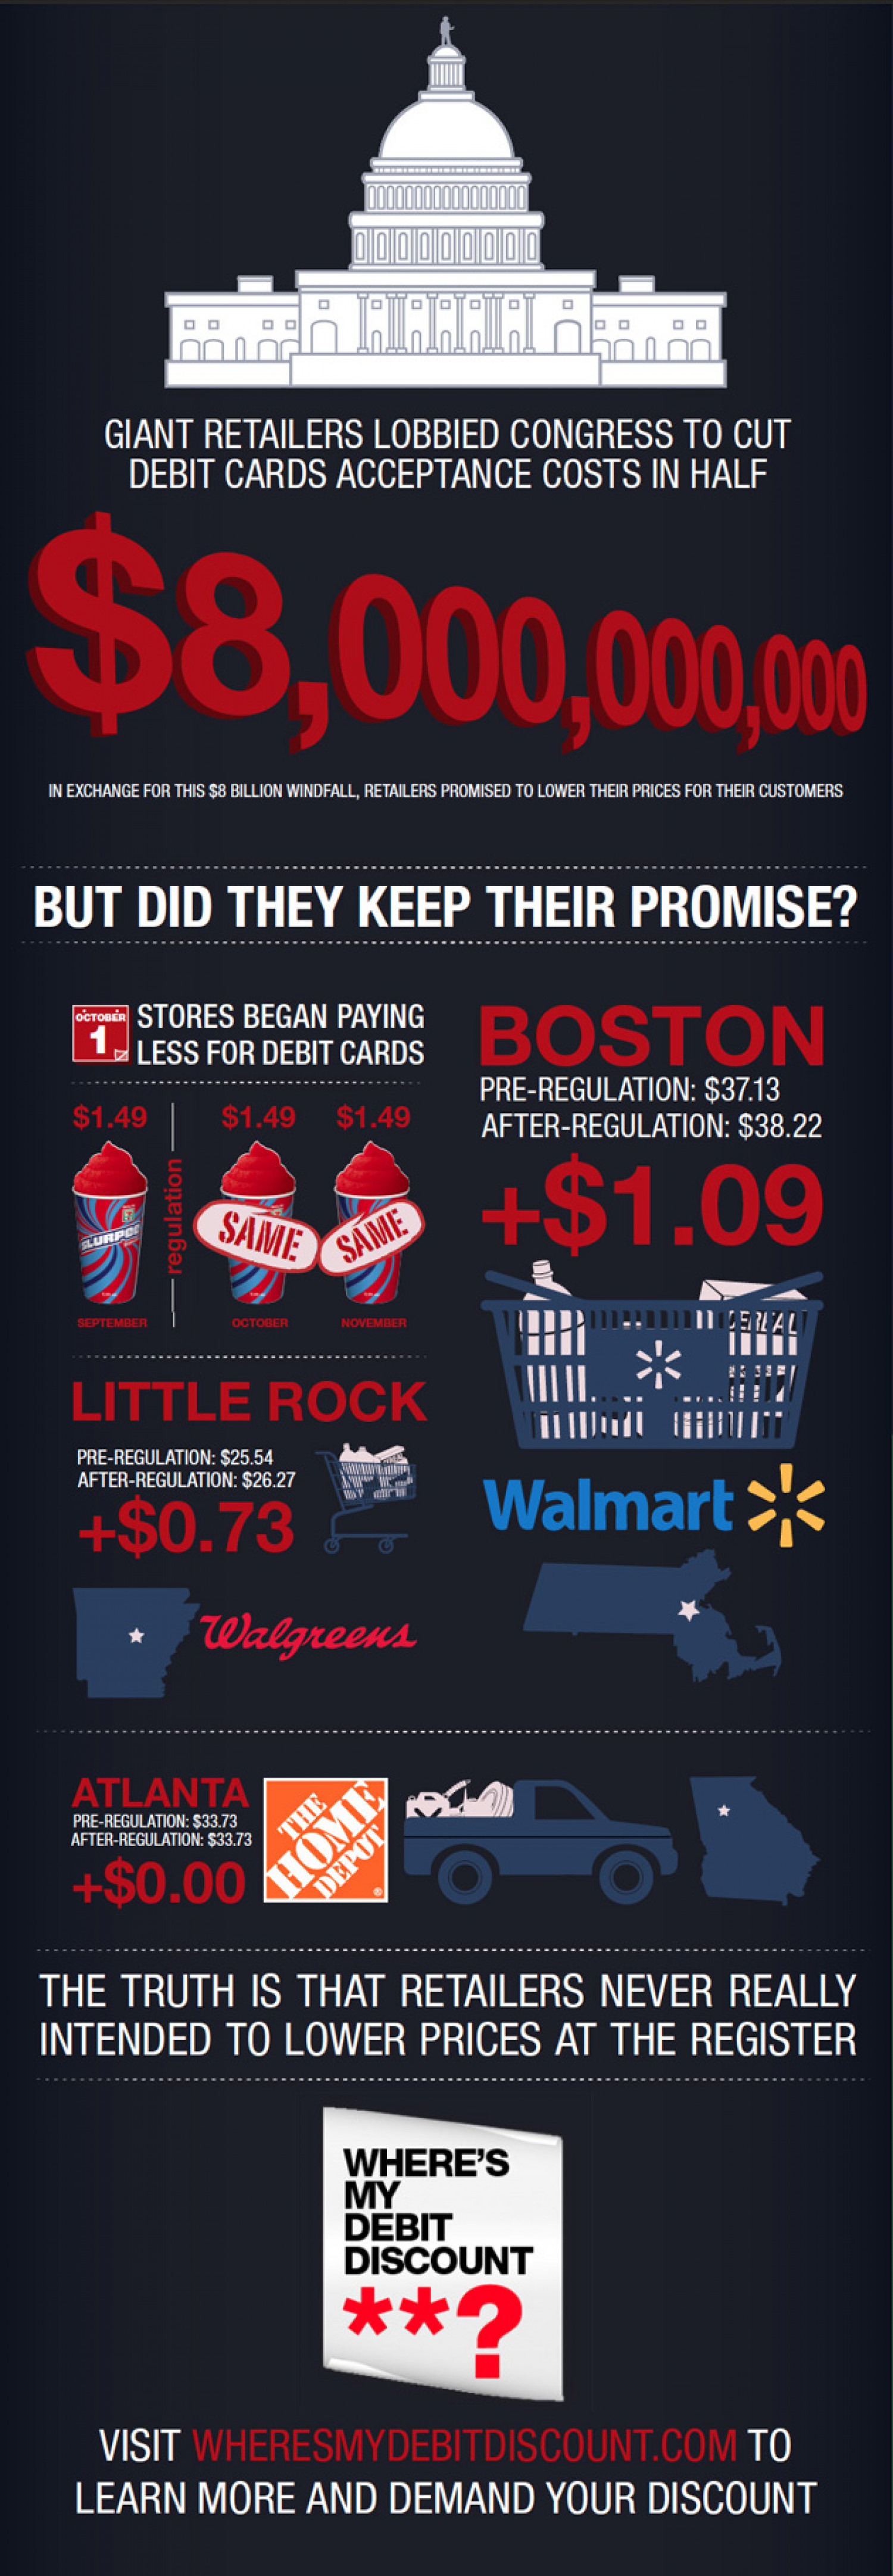 Have Retailers Kept Their Promises? Infographic